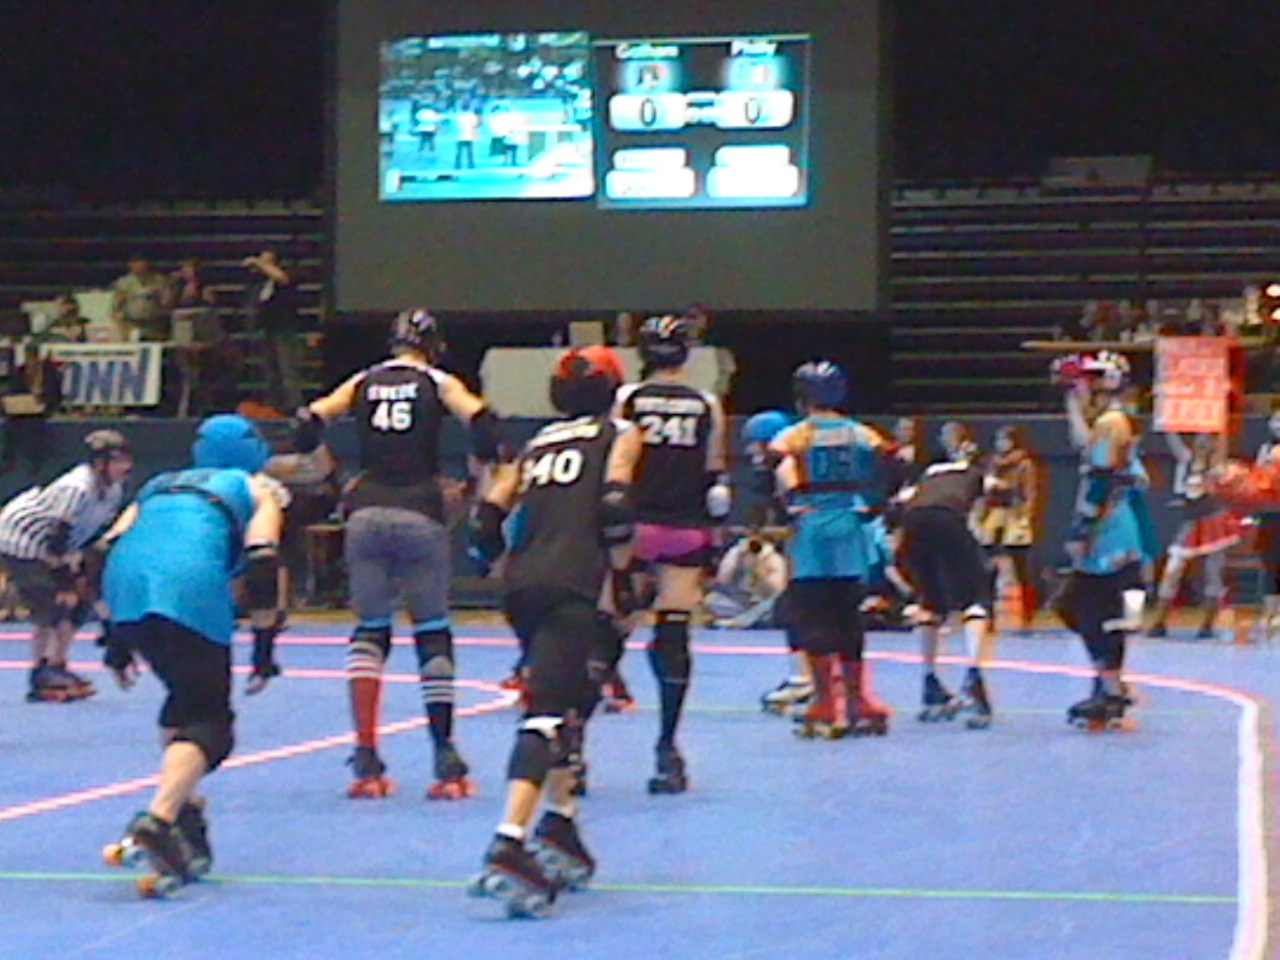 Roller skating rink westchester ny - Philly Vs Gotham Notice How Some Blockers Started Closer To The Jammer Line Getting Ready To Execute The Slow Game Strategy